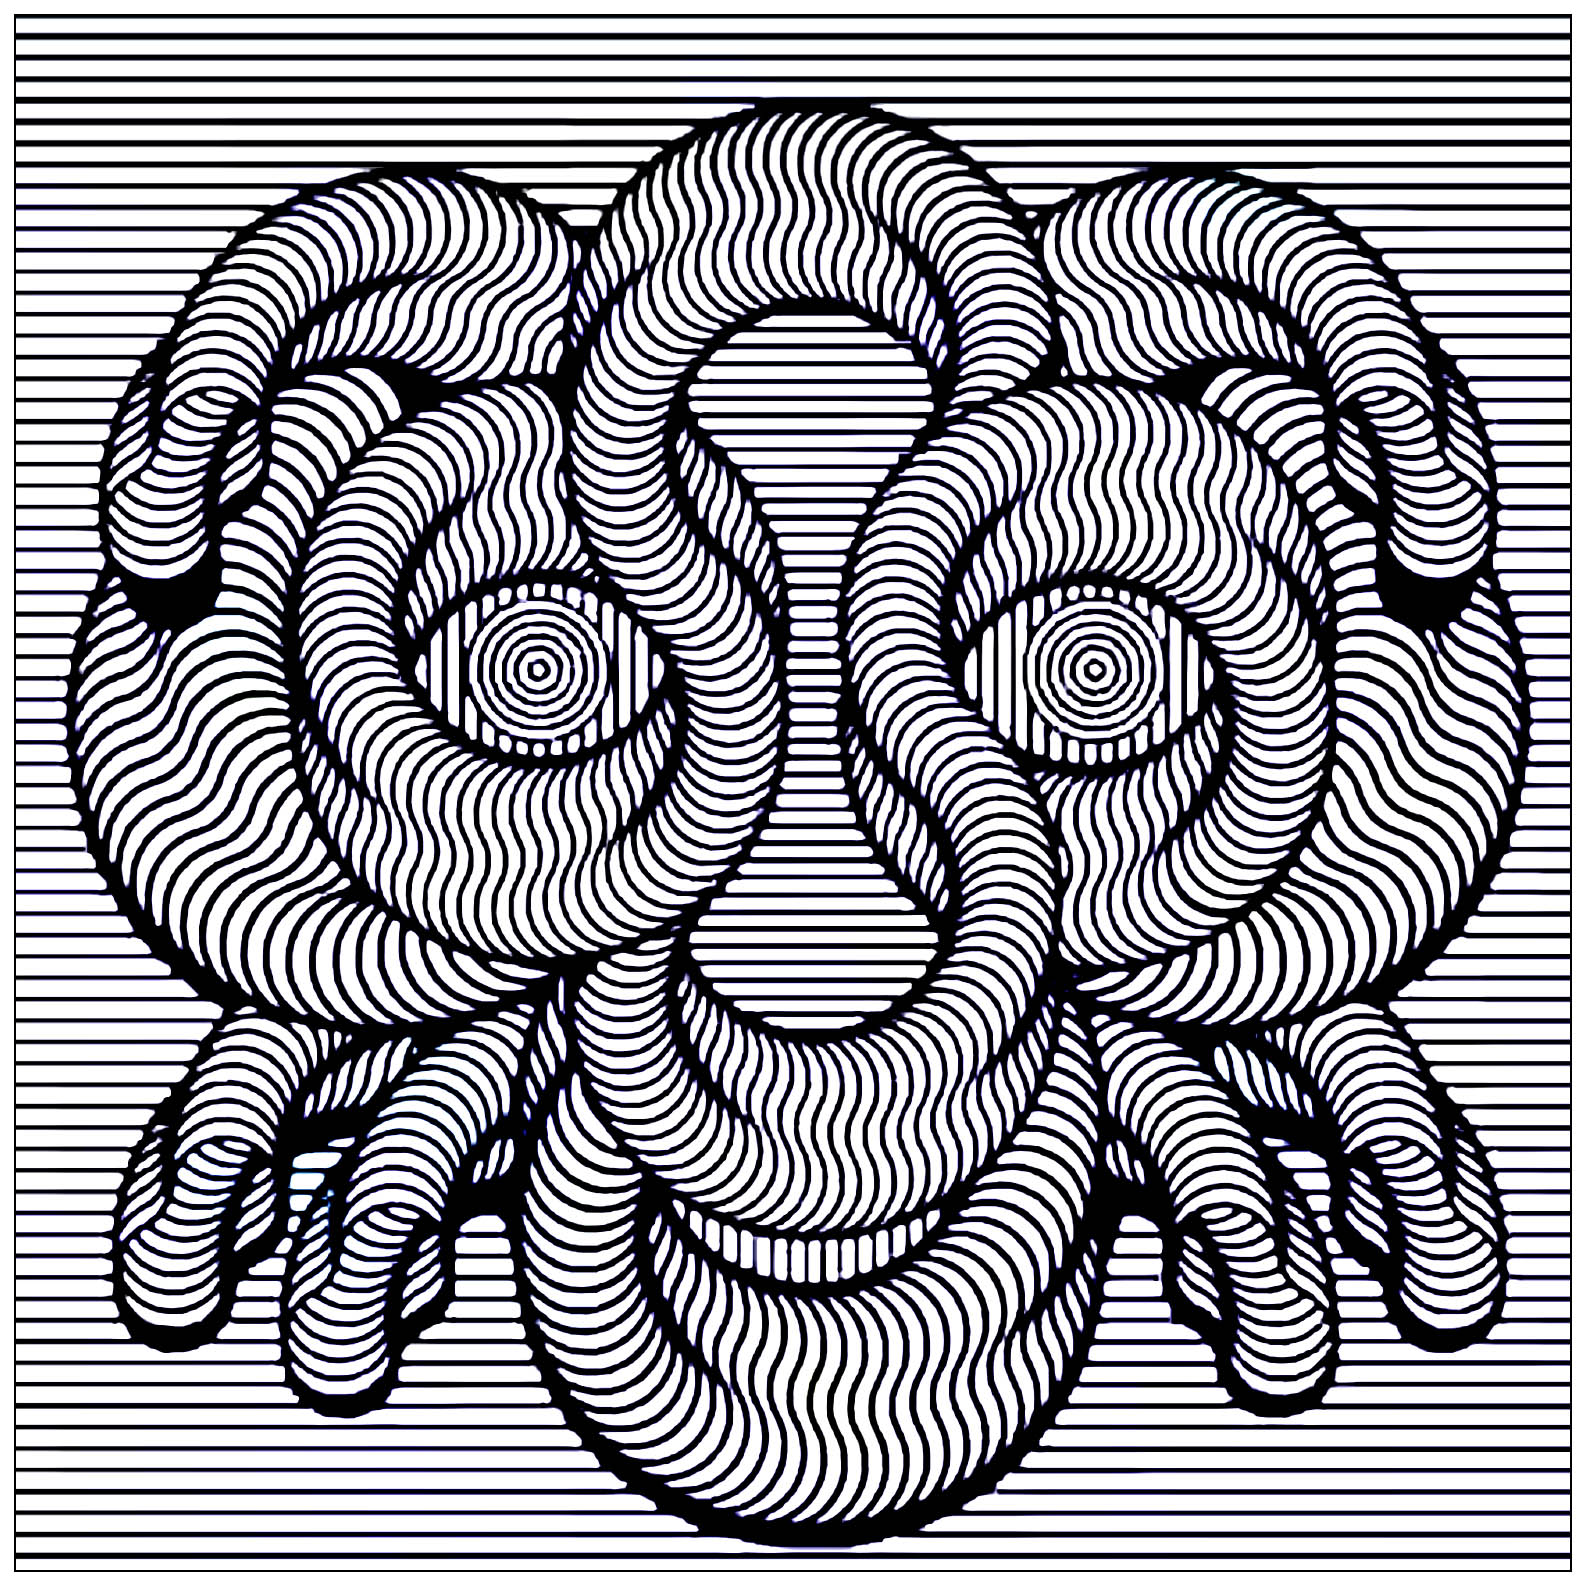 Hypnotic face - Optical Illusions (Op Art) Adult Coloring Pages